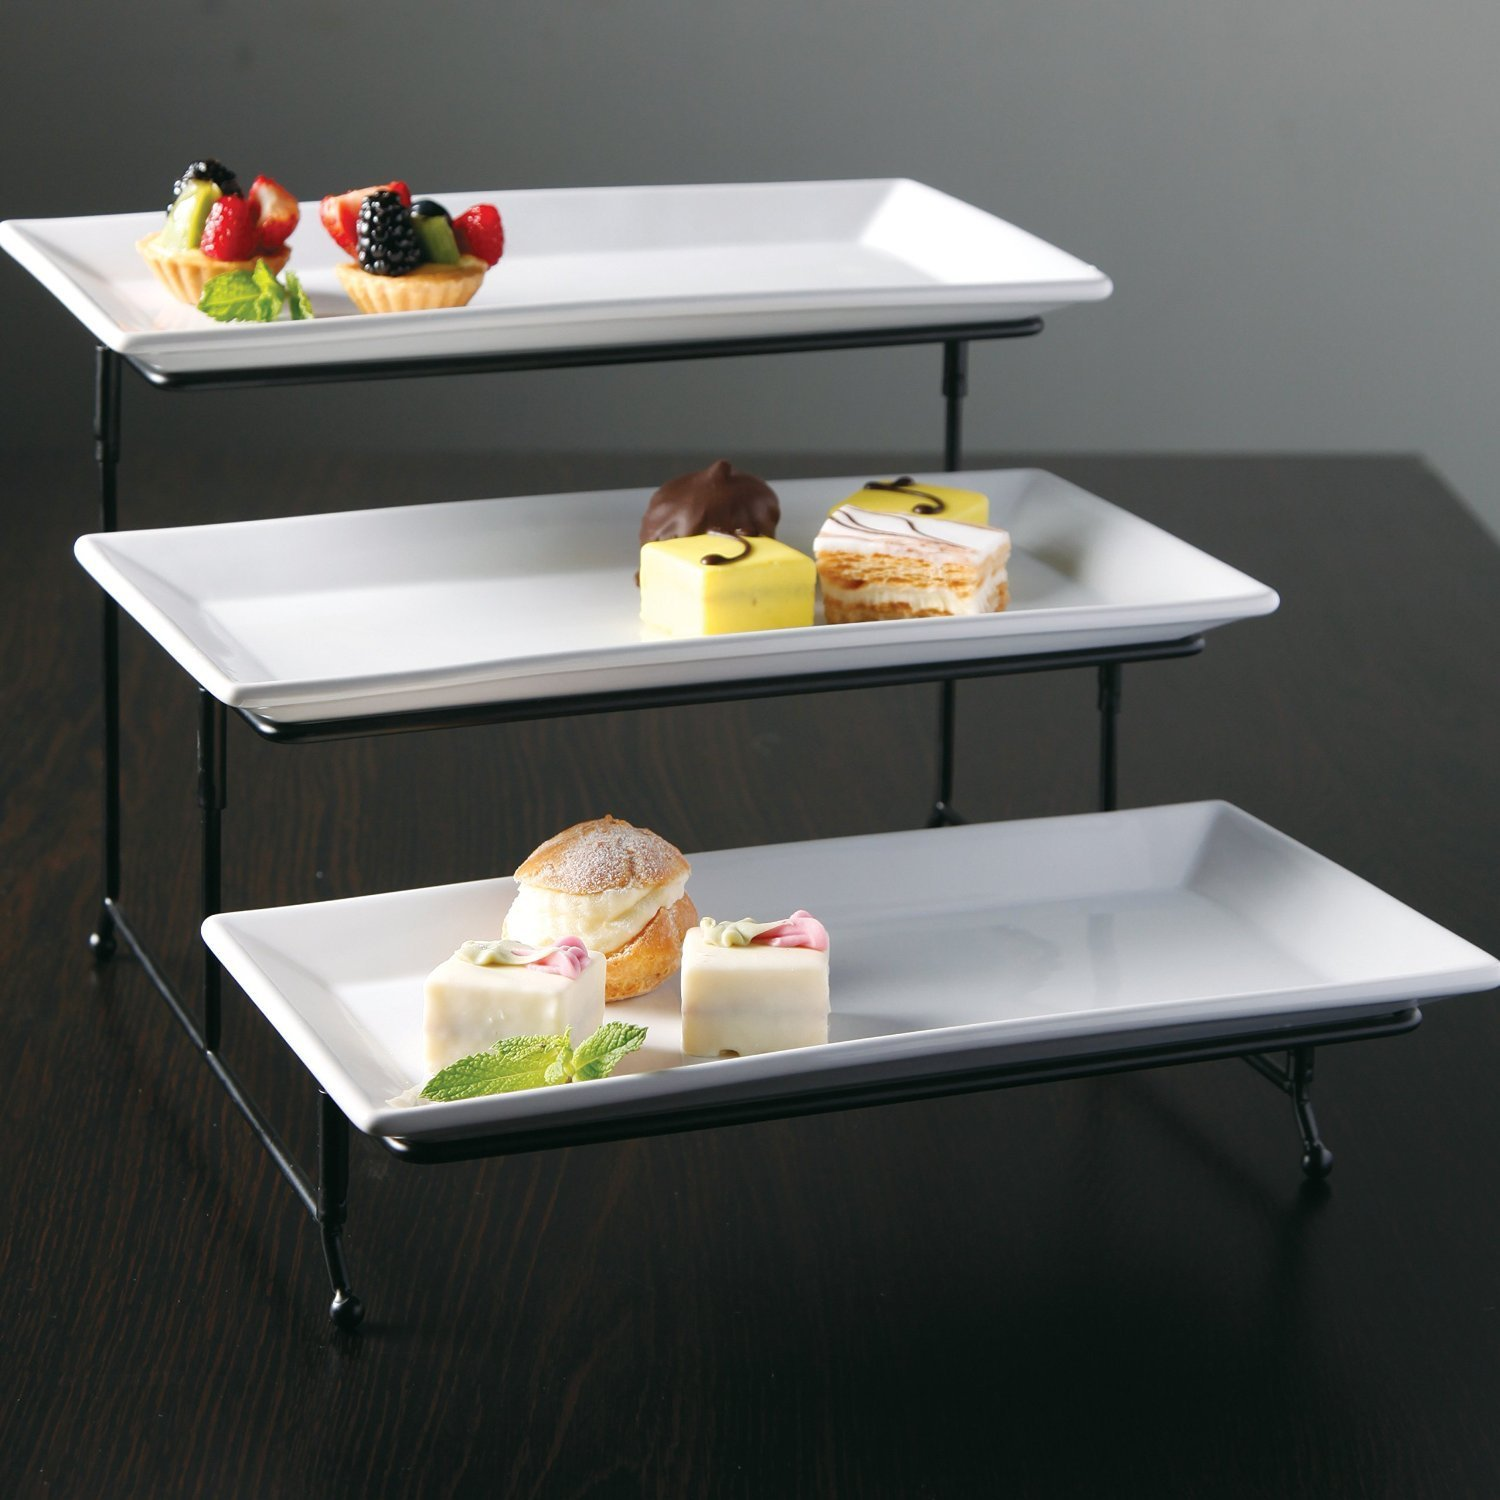 Gibson Elite Gracious Dining 3 Tier Plate Set with Metal Stand & Tiered Serving Ware